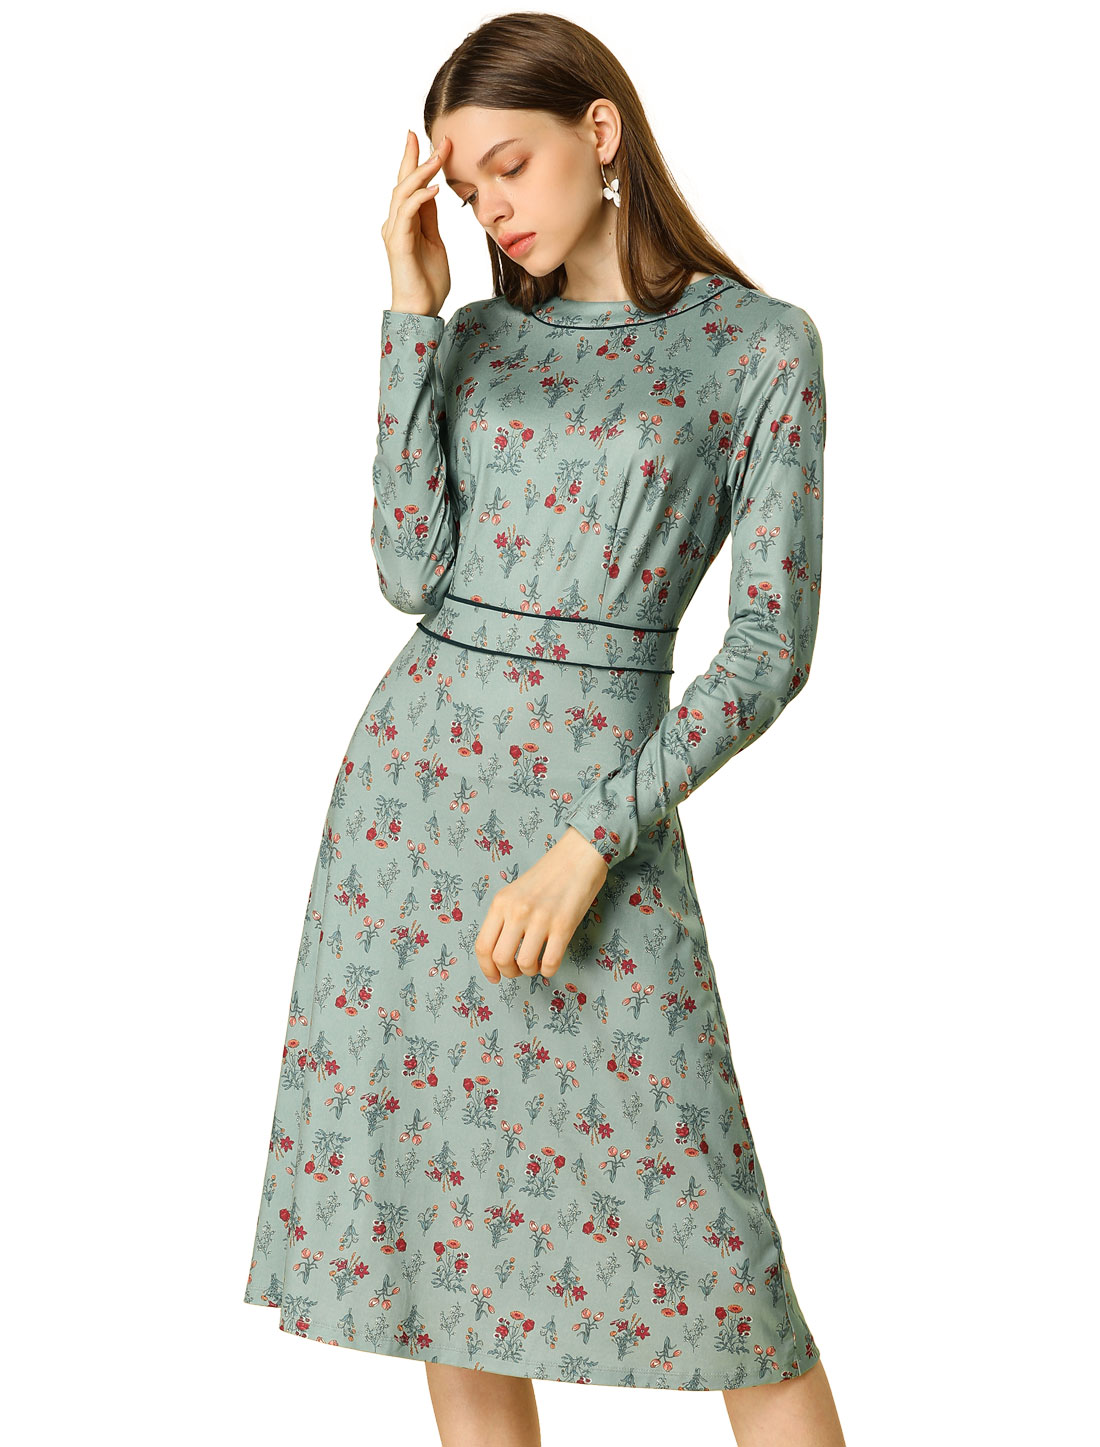 Women's Floral Long Sleeve A-Line Contrast Piped Vintage Dress Green XL